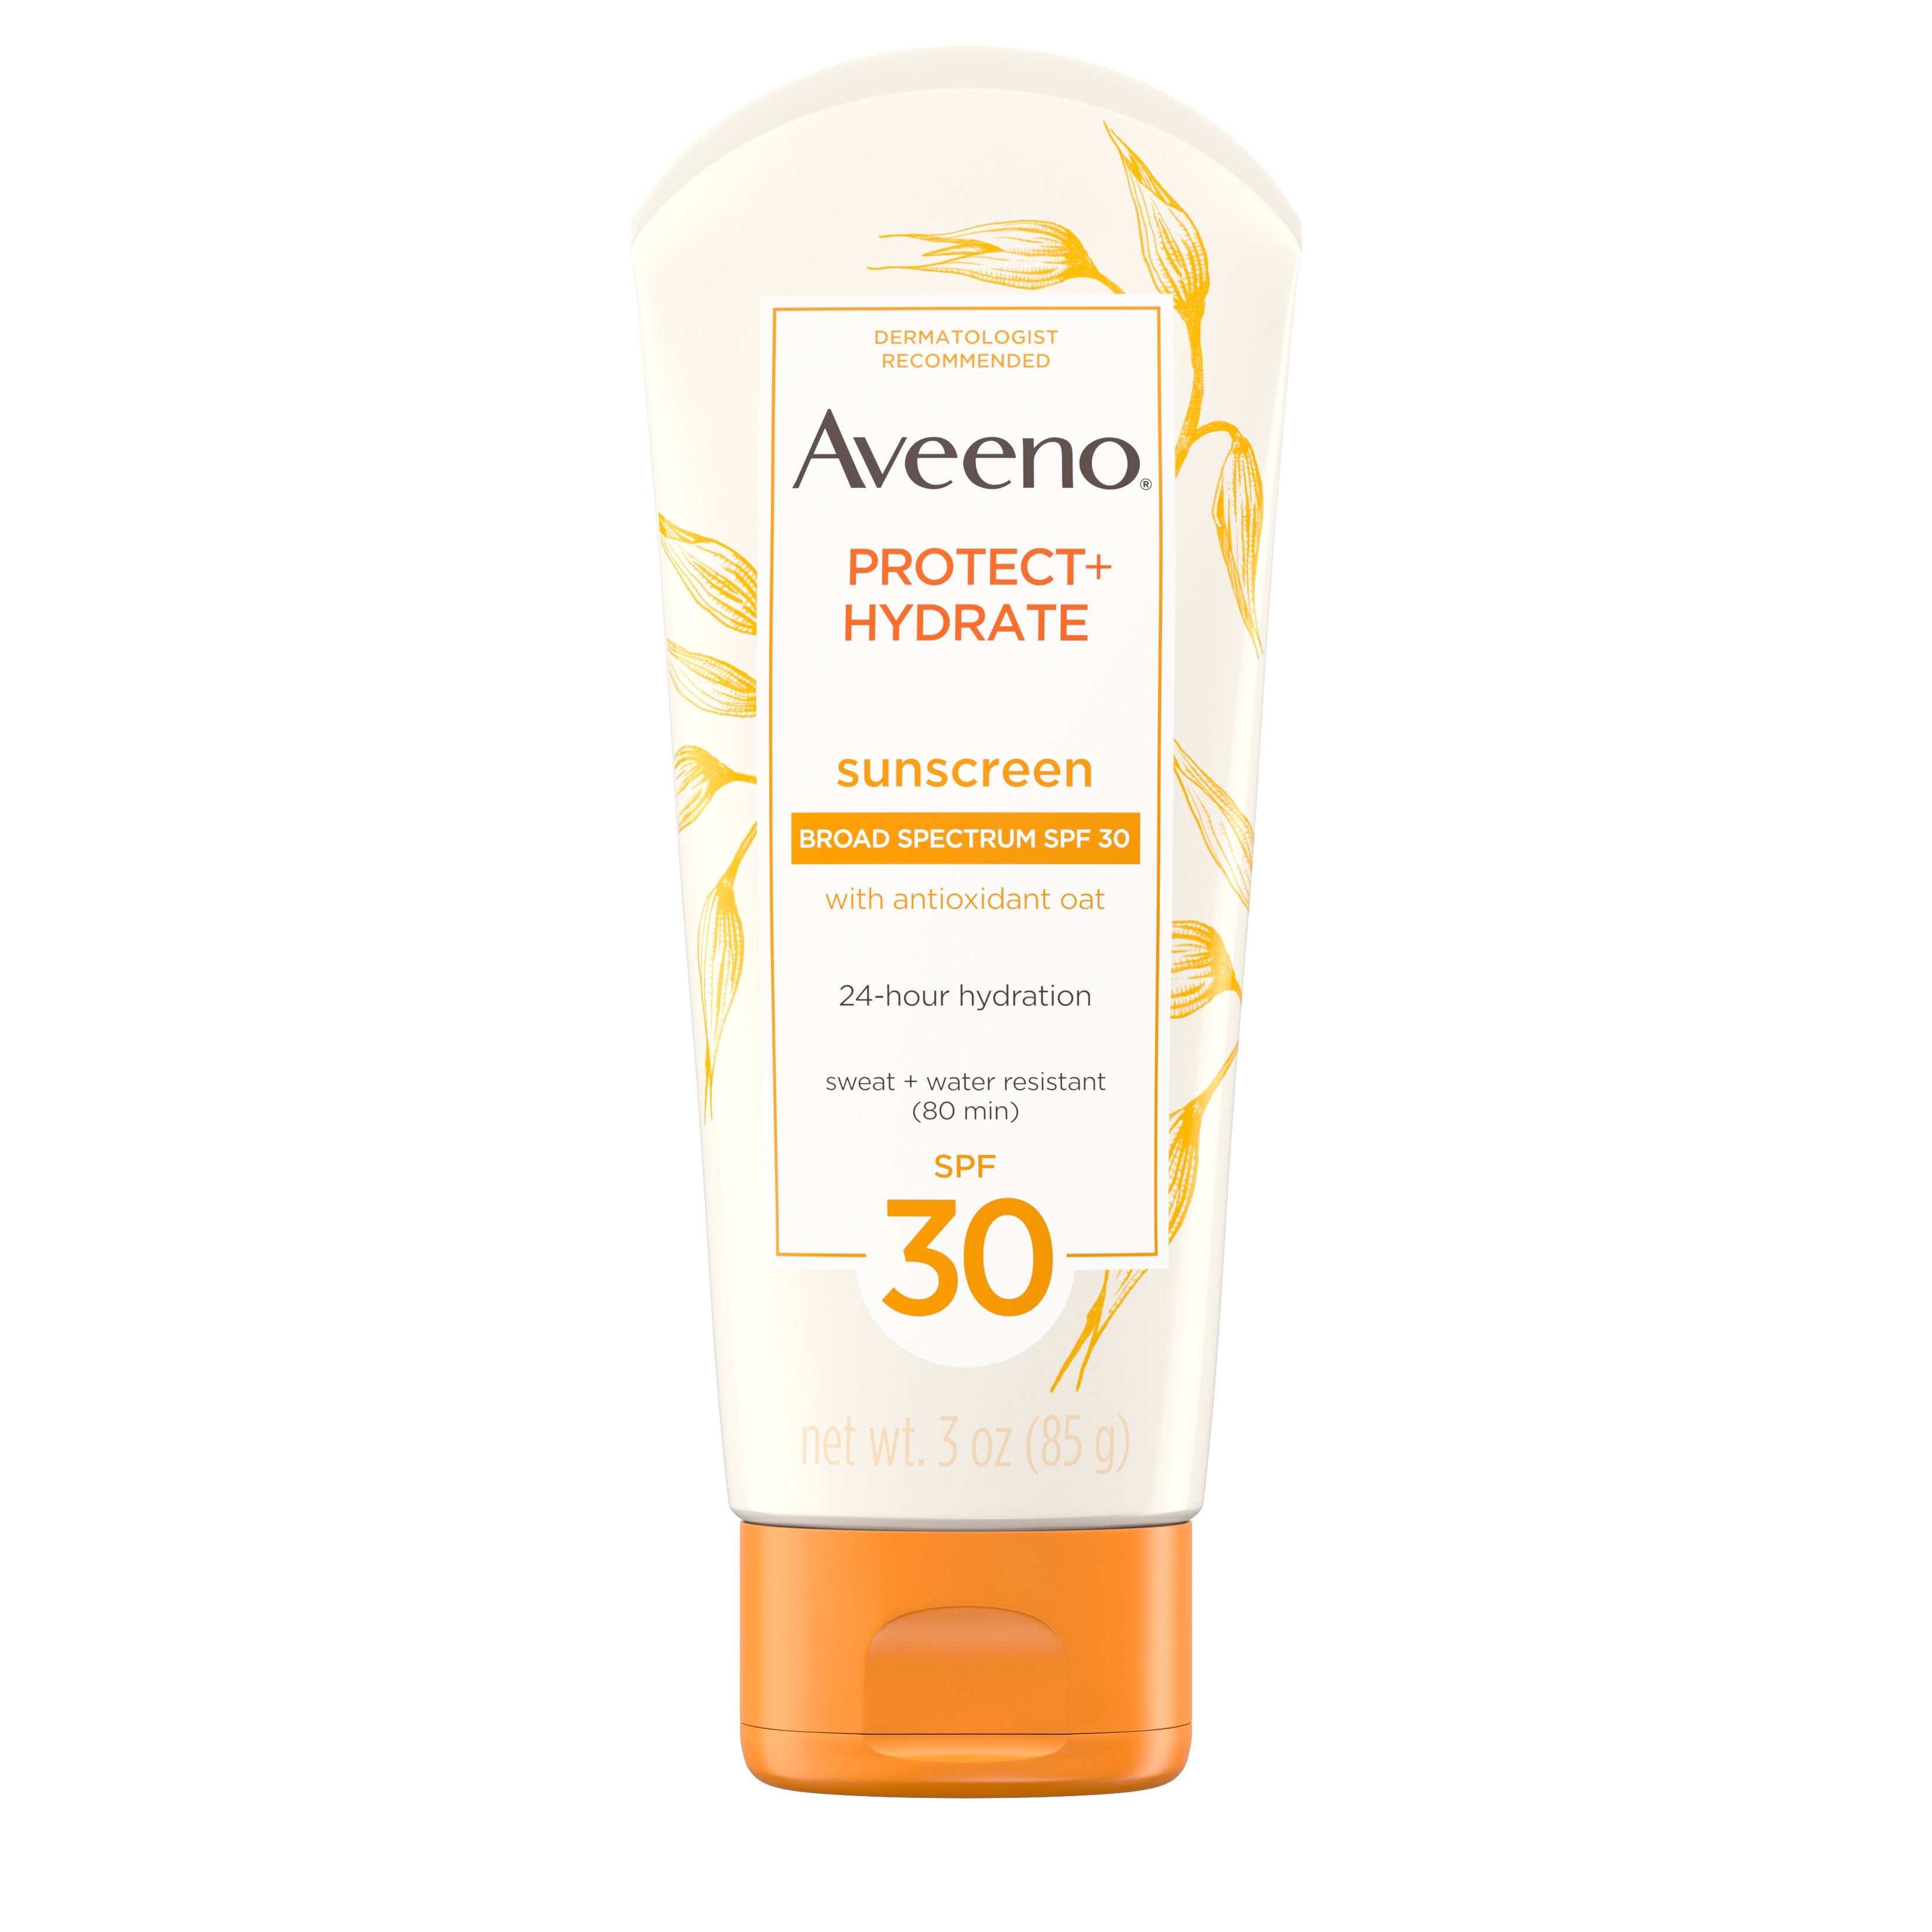 Aveeno Active Naturals Protect Hydrate Sunscreen Lotion - SPF 30, 3oz